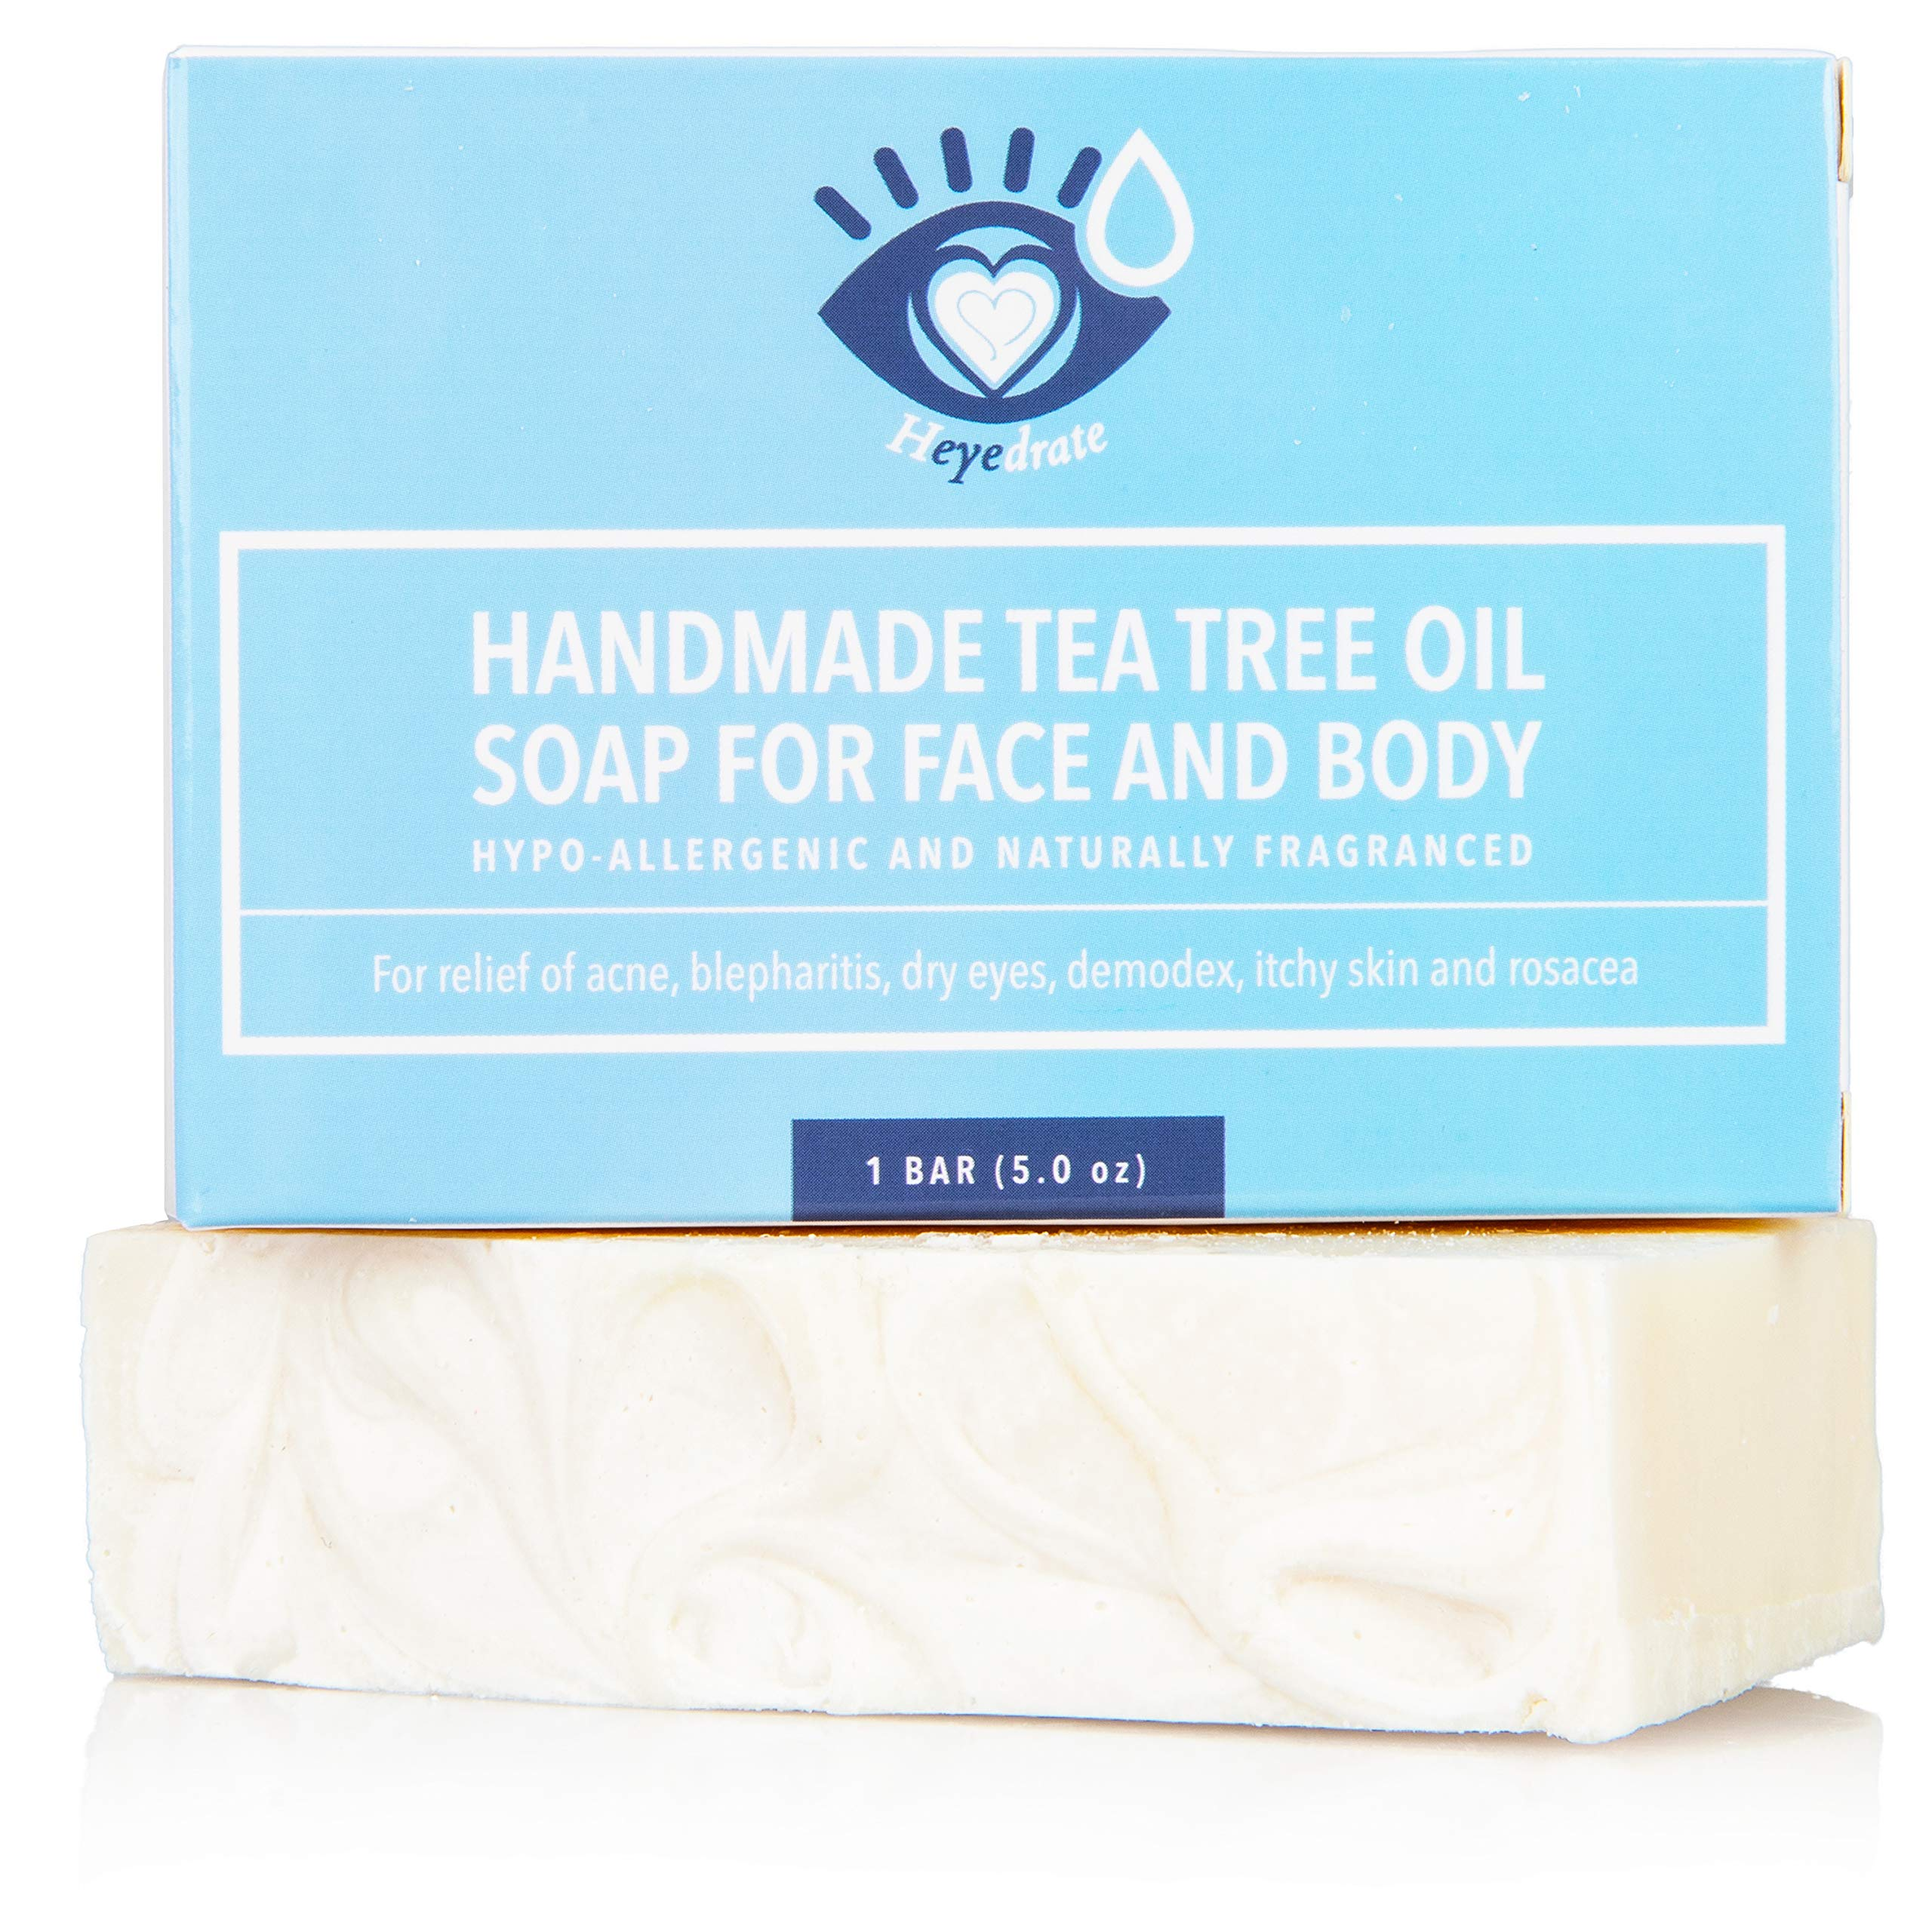 Tea Tree Oil Face Soap and Eyelid Scrub for Support of Eyelid Irritation, Itchy Skin, Flaky Skin, and Dryness, Handmade with Organic Ingredients (1 Pack) by Heyedrate